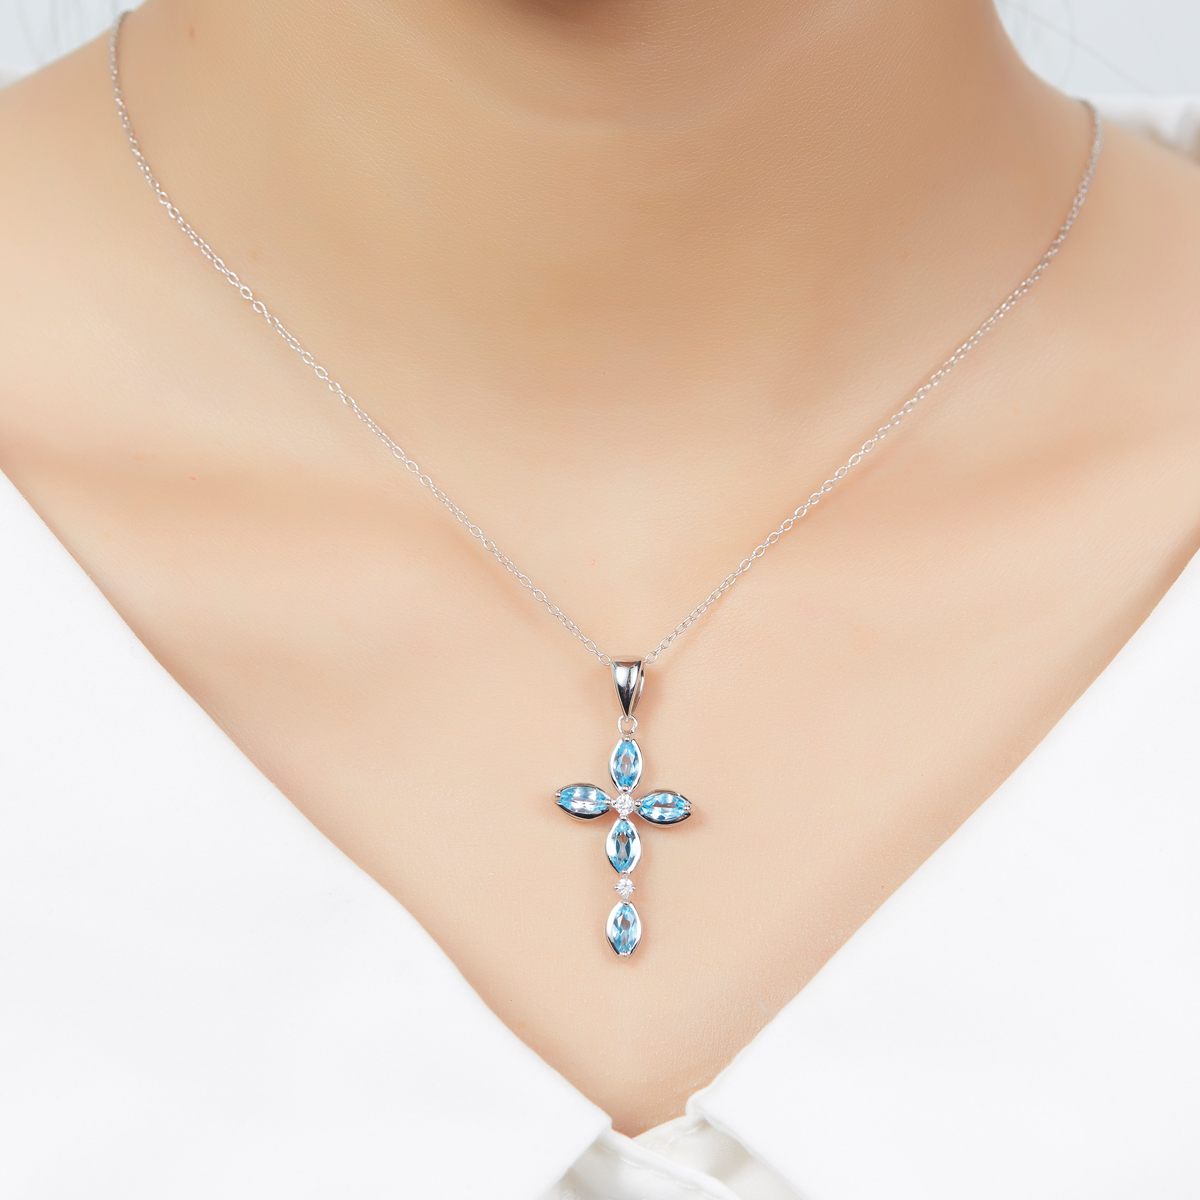 Hutang 1.51ct Real Swiss Blue Topaz Solid 925 Sterling Silver Cross Pendant Necklaces Gemstone Fine Jewelry for Women Free Chain